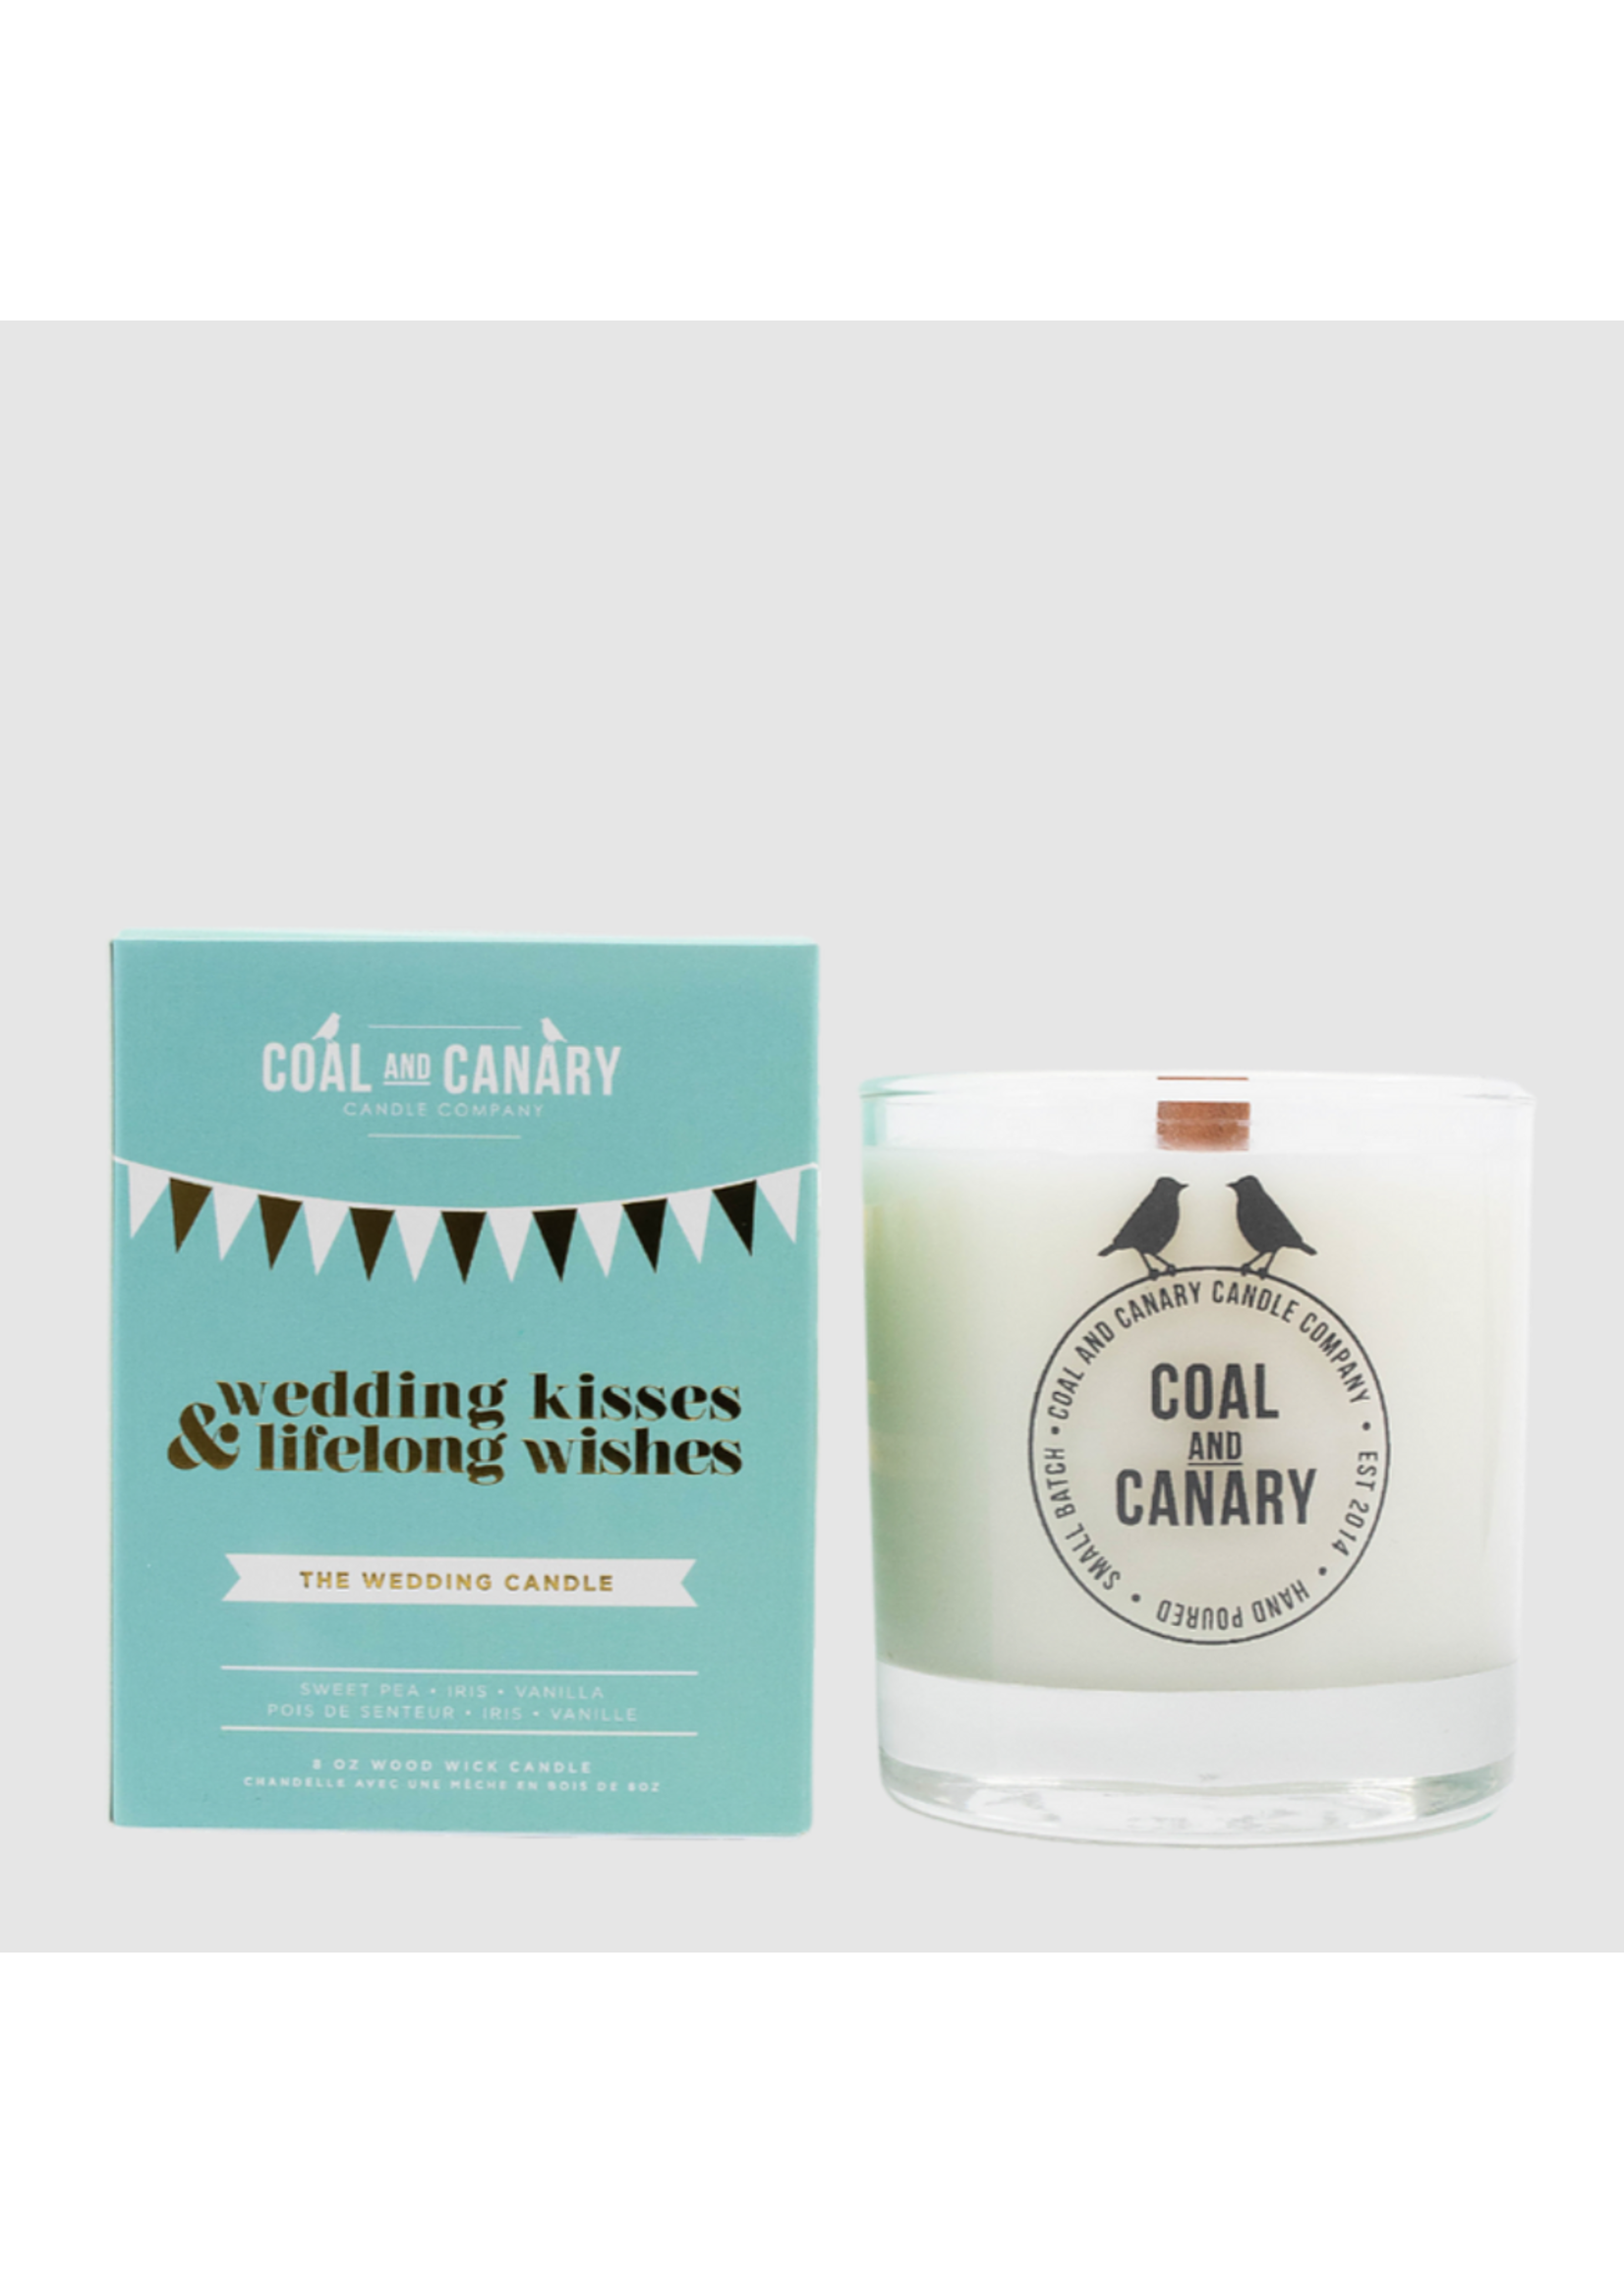 Coal and Canary Wedding Kisses & Lifelong Wishes